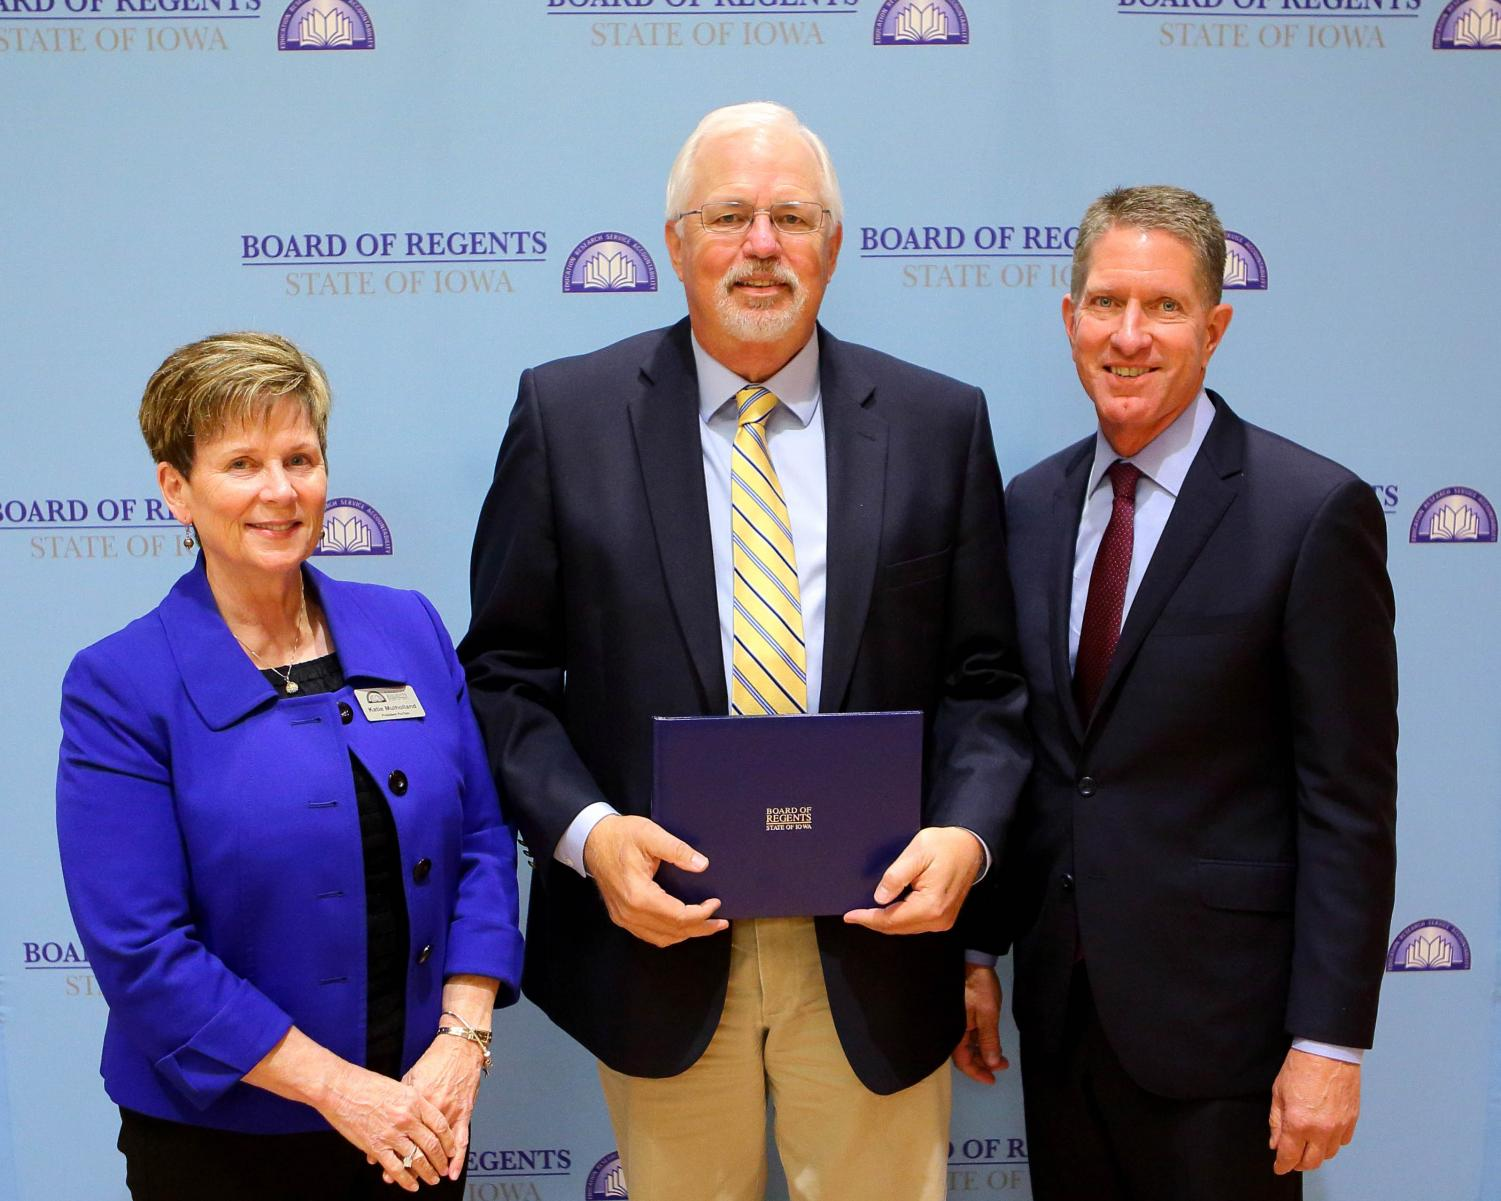 Rex Karsten (center), pictured here receiving the Iowa Board of Regents Faculty Excellence Award, passed away on Dec. 11 of last year at age 67.